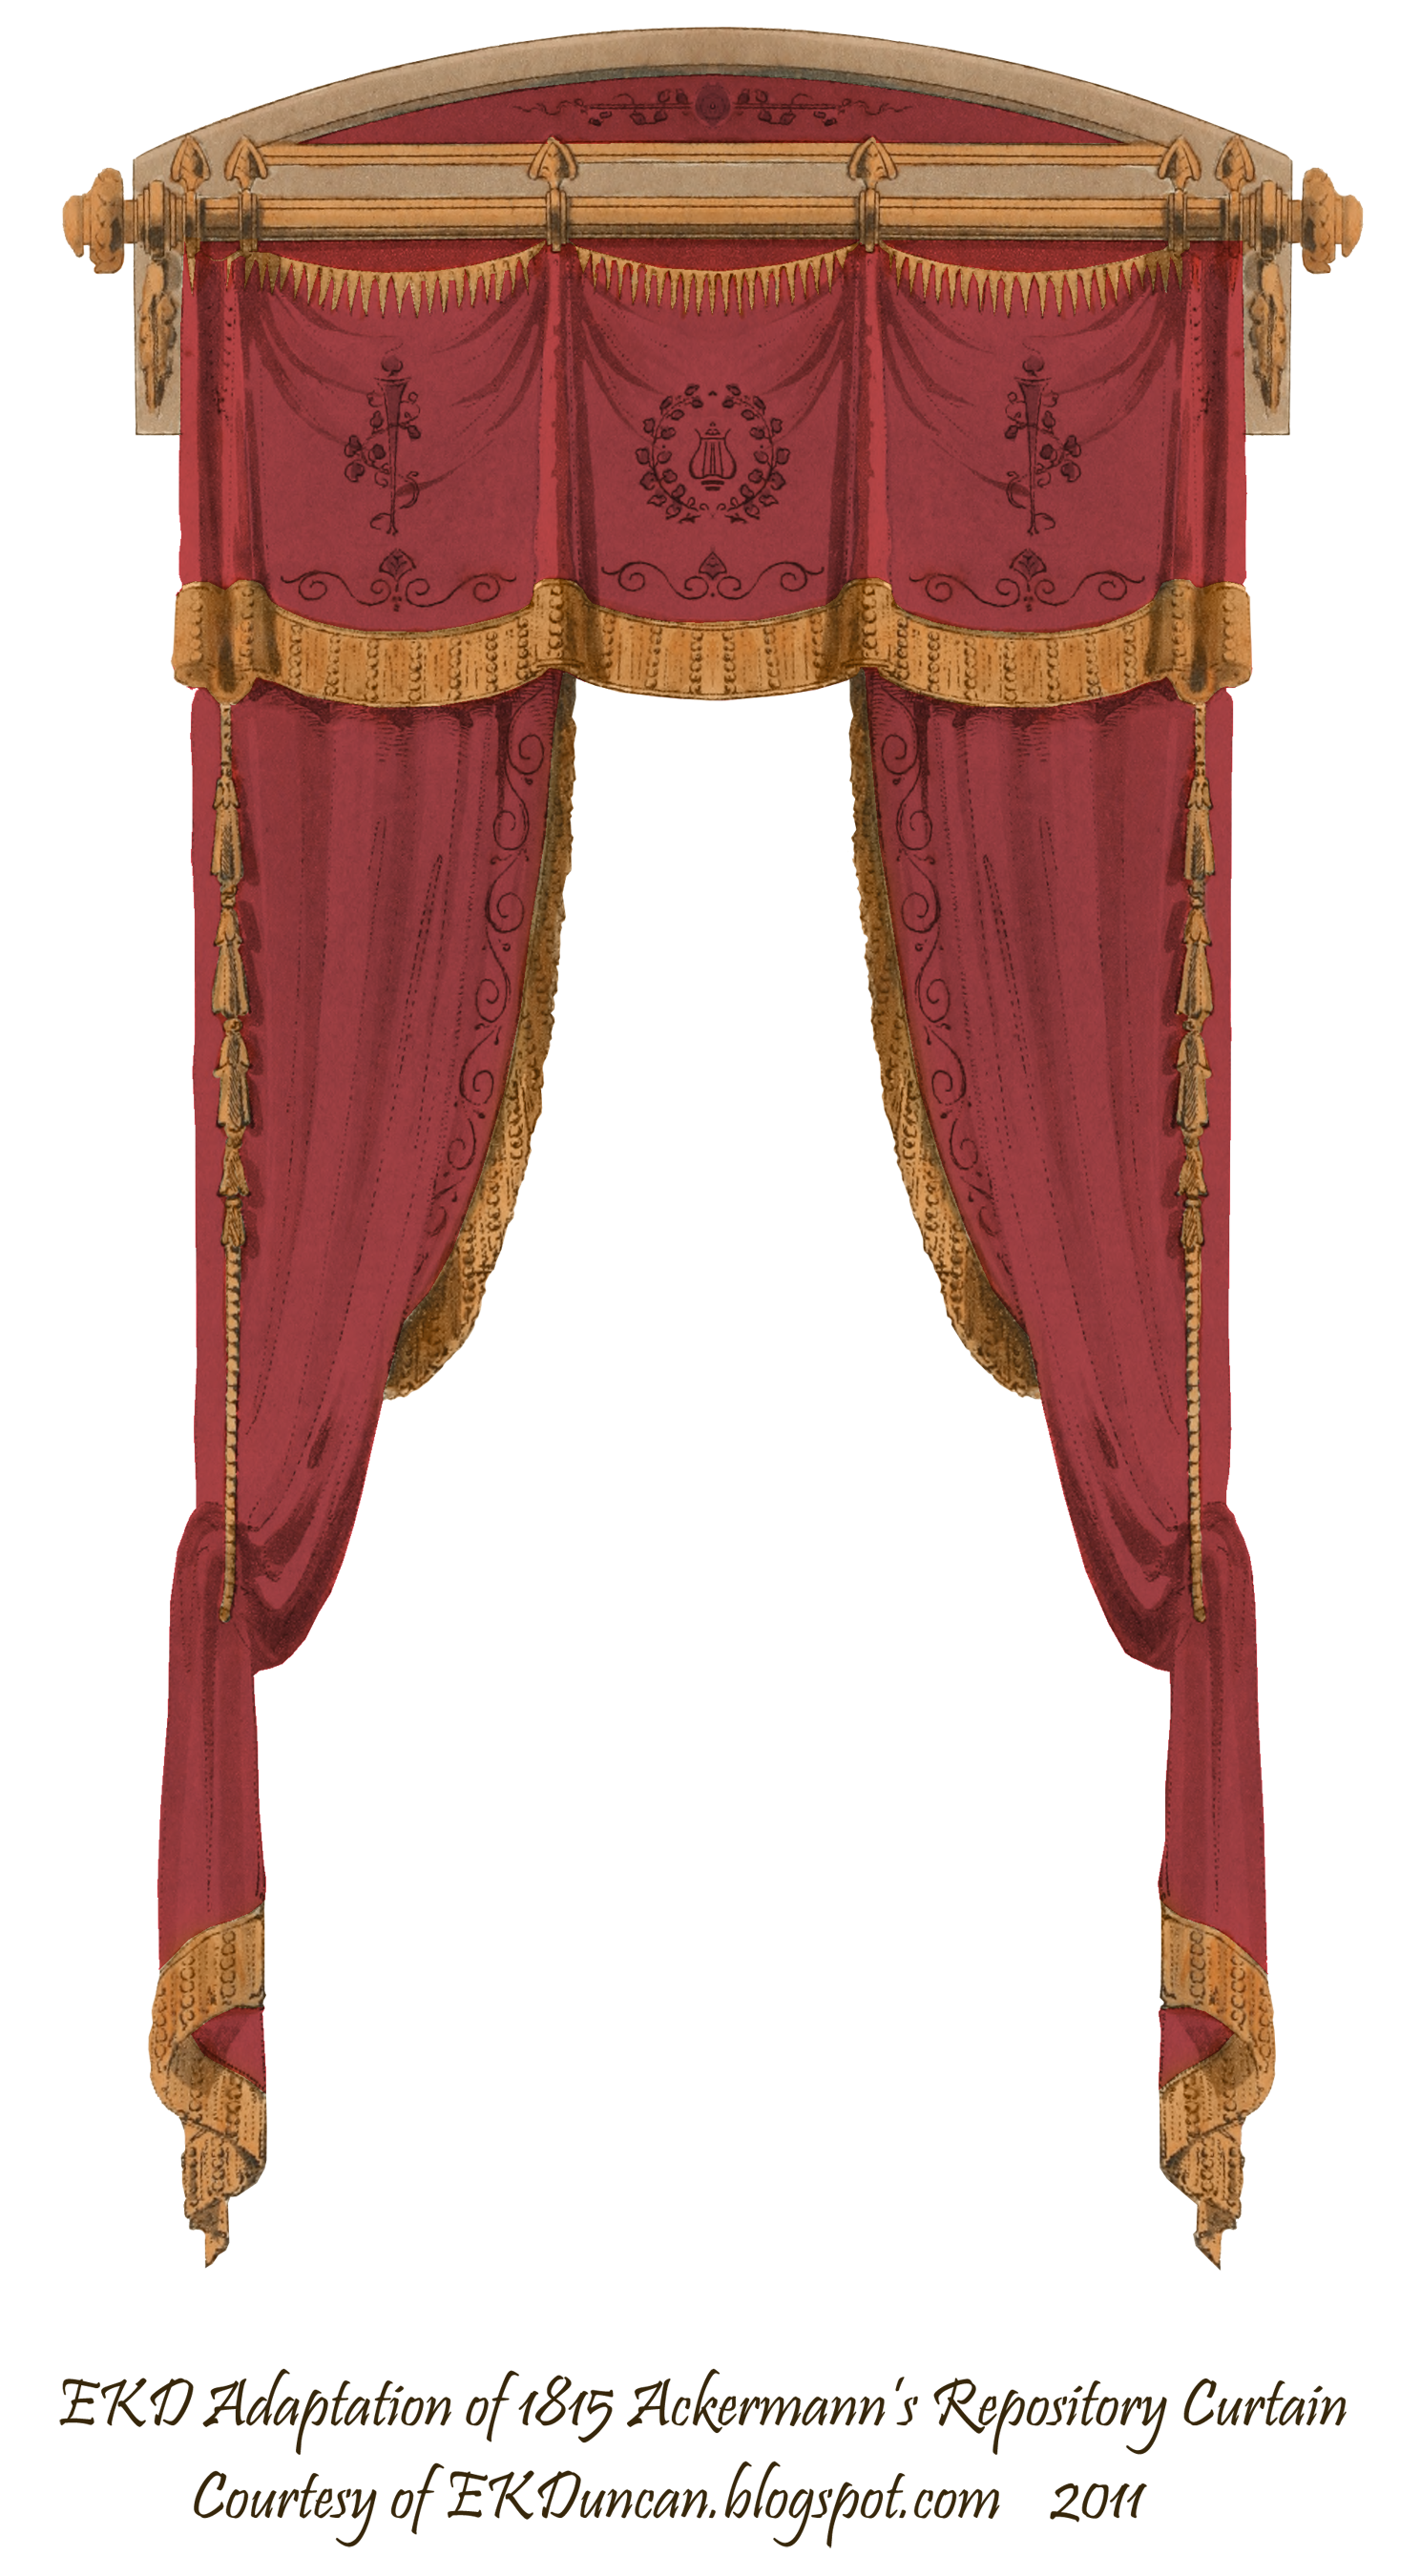 Victorian curtains png. French curtain wine